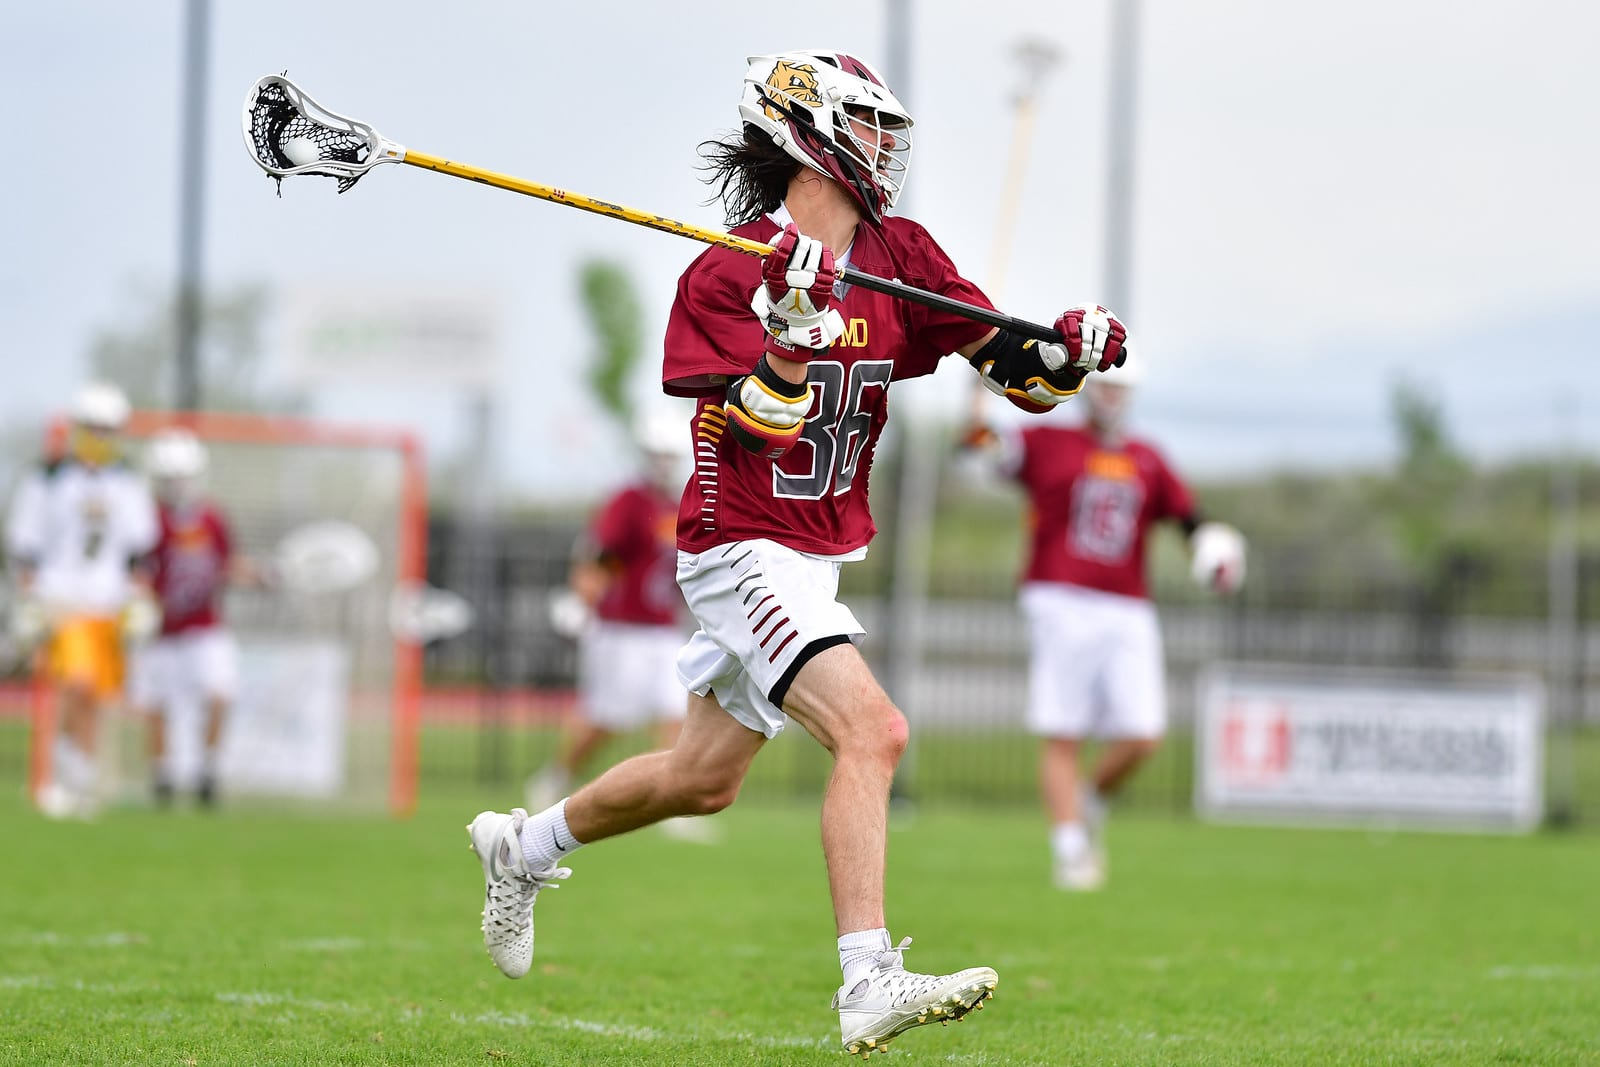 2019 mcla national championship division II